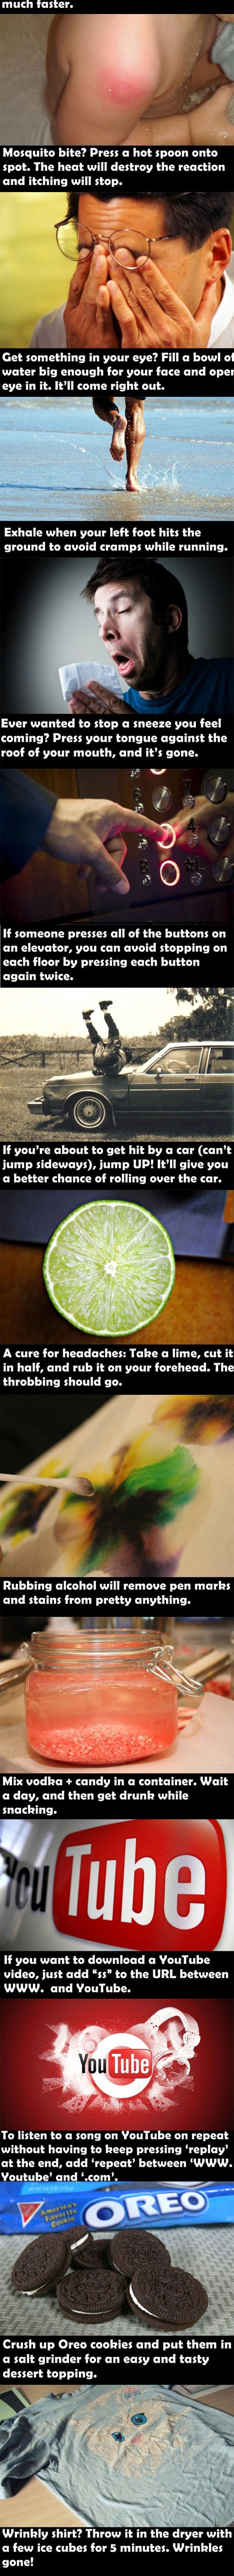 Good to know - Life hacks